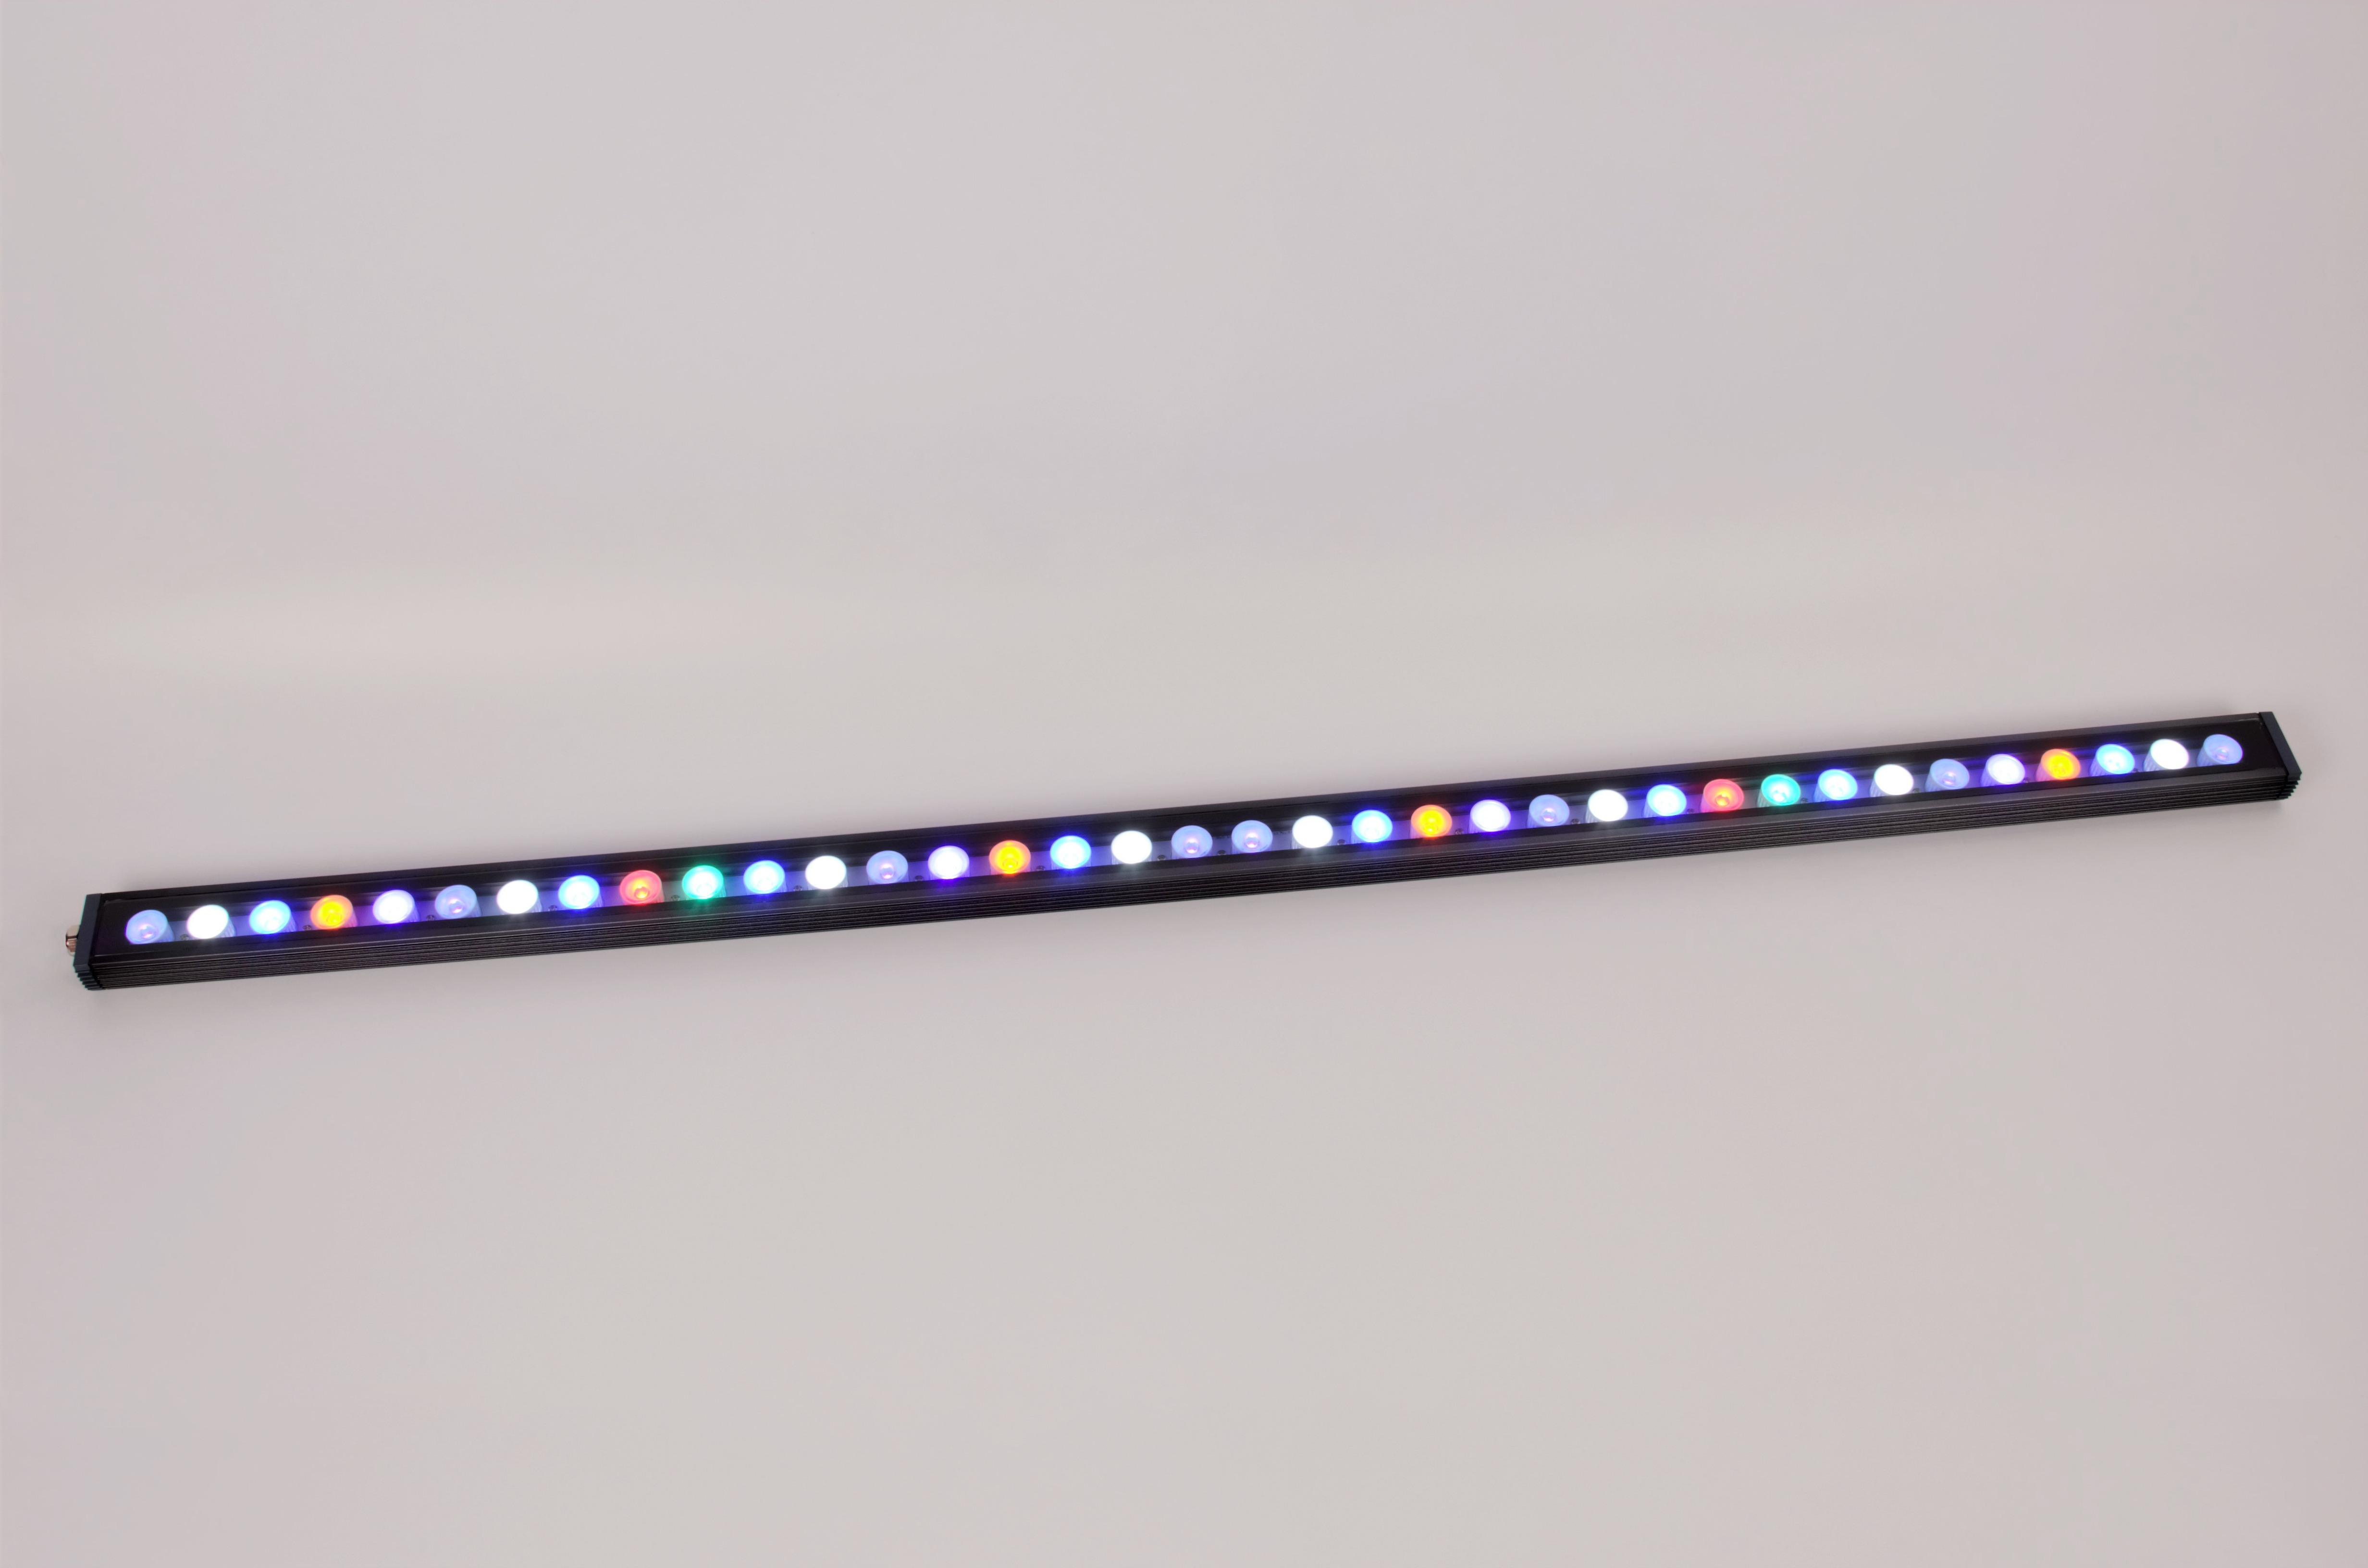 Aquarium LED-belysning